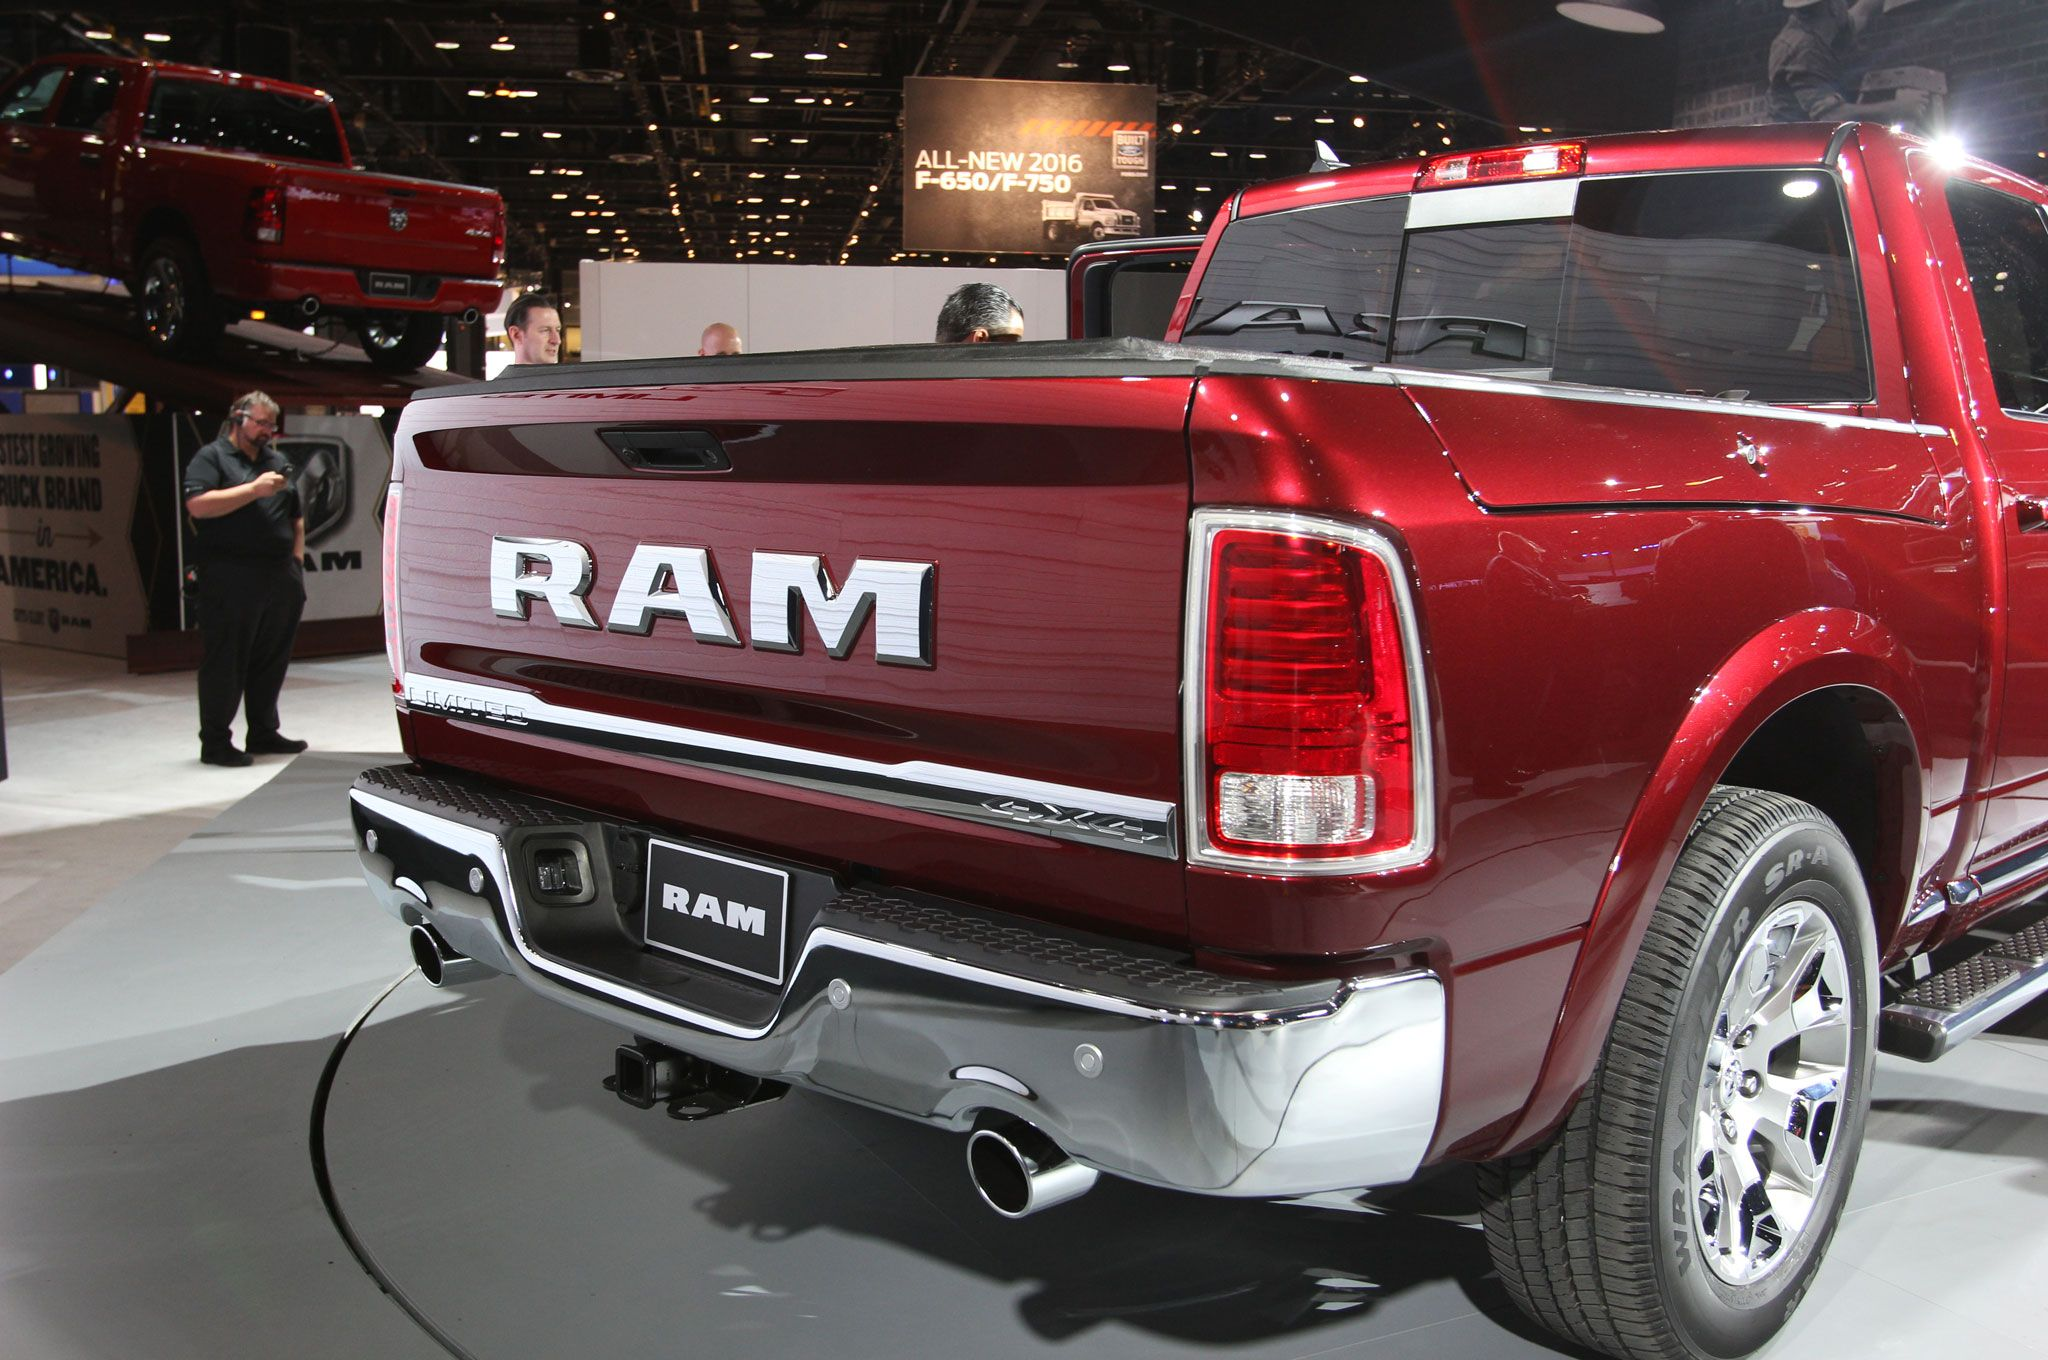 2017 Ram 1500 Laramie Limited Photo 1